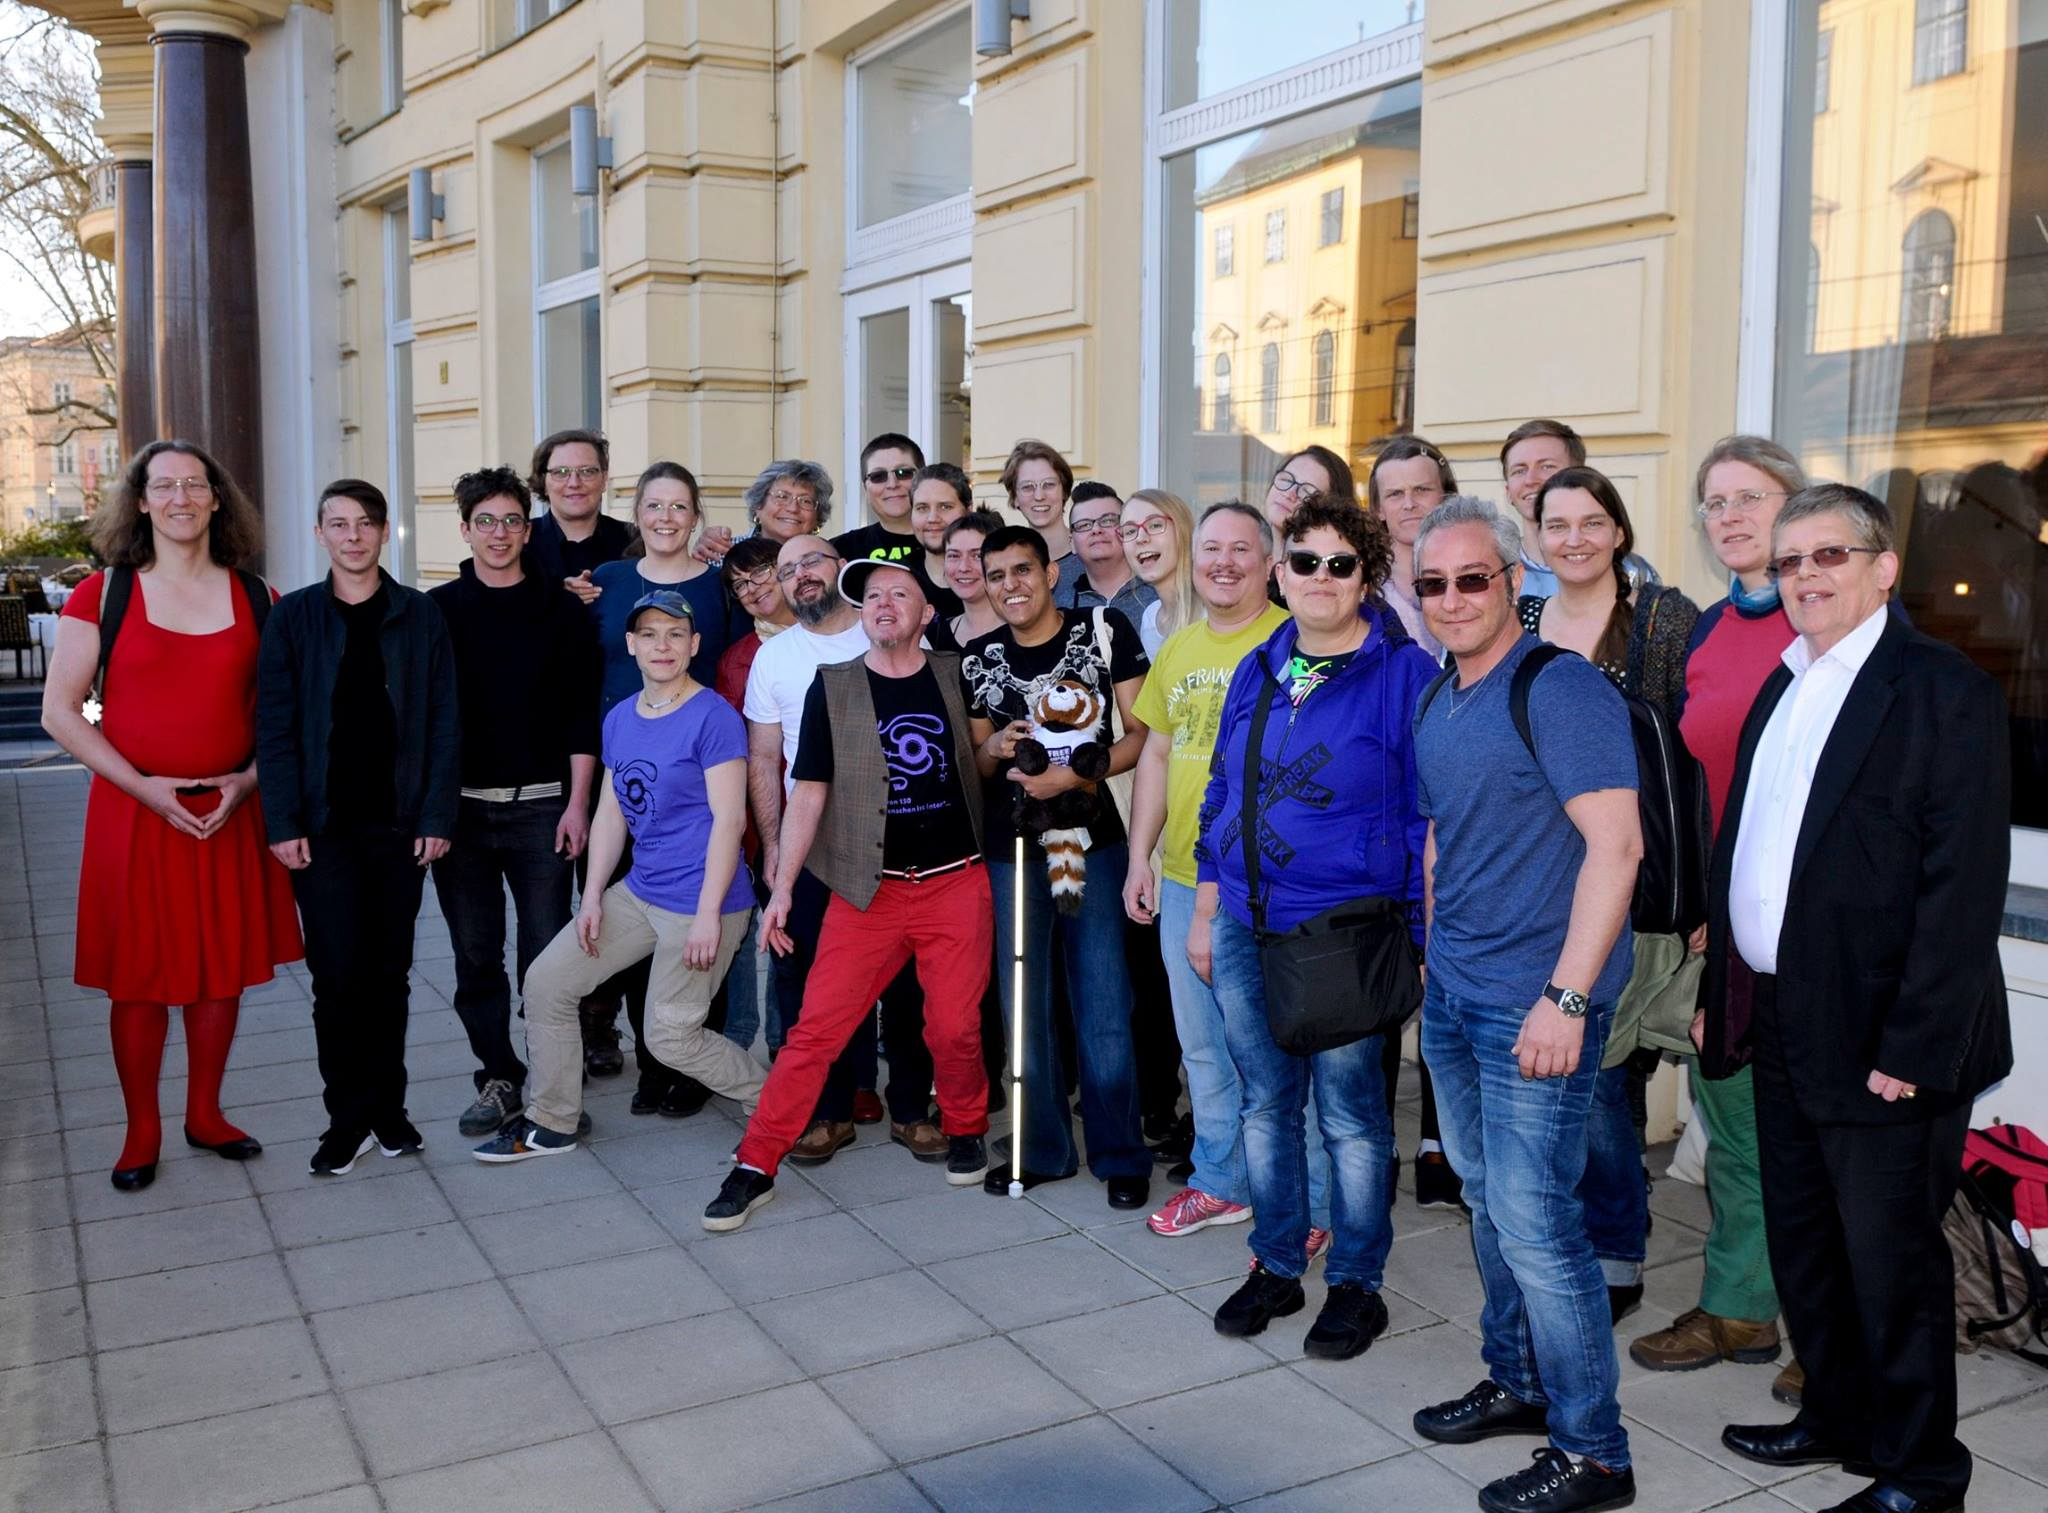 STATEMENT of the 1st European Intersex Community Event (Vienna, 30st – 31st of March 2017)